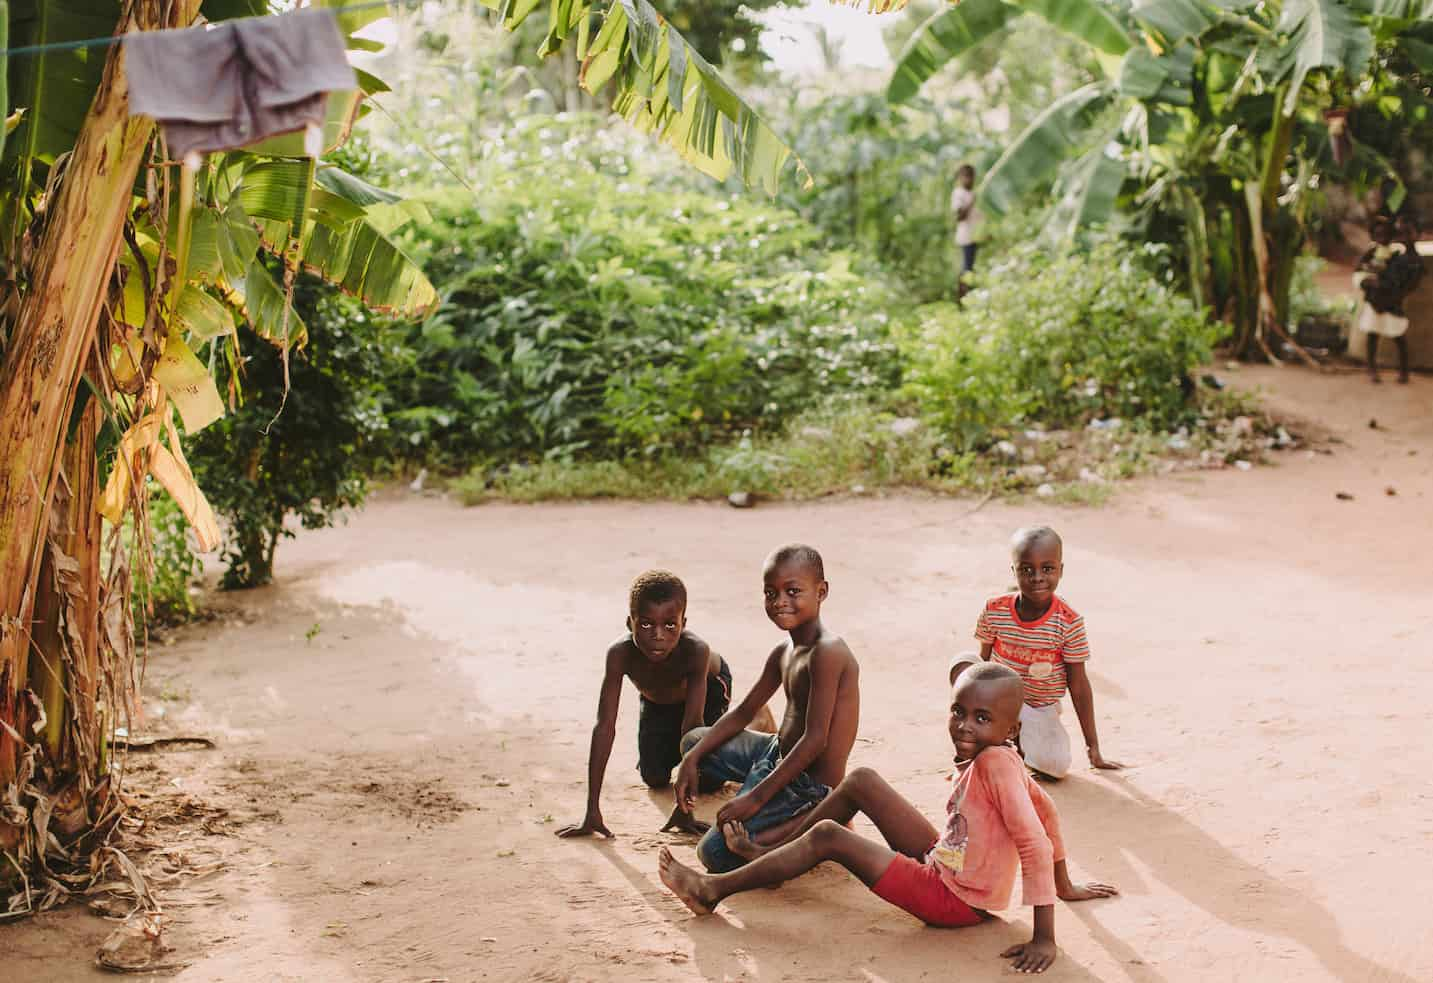 Children sit on the dirt ground, playing. There are palm trees in the background.